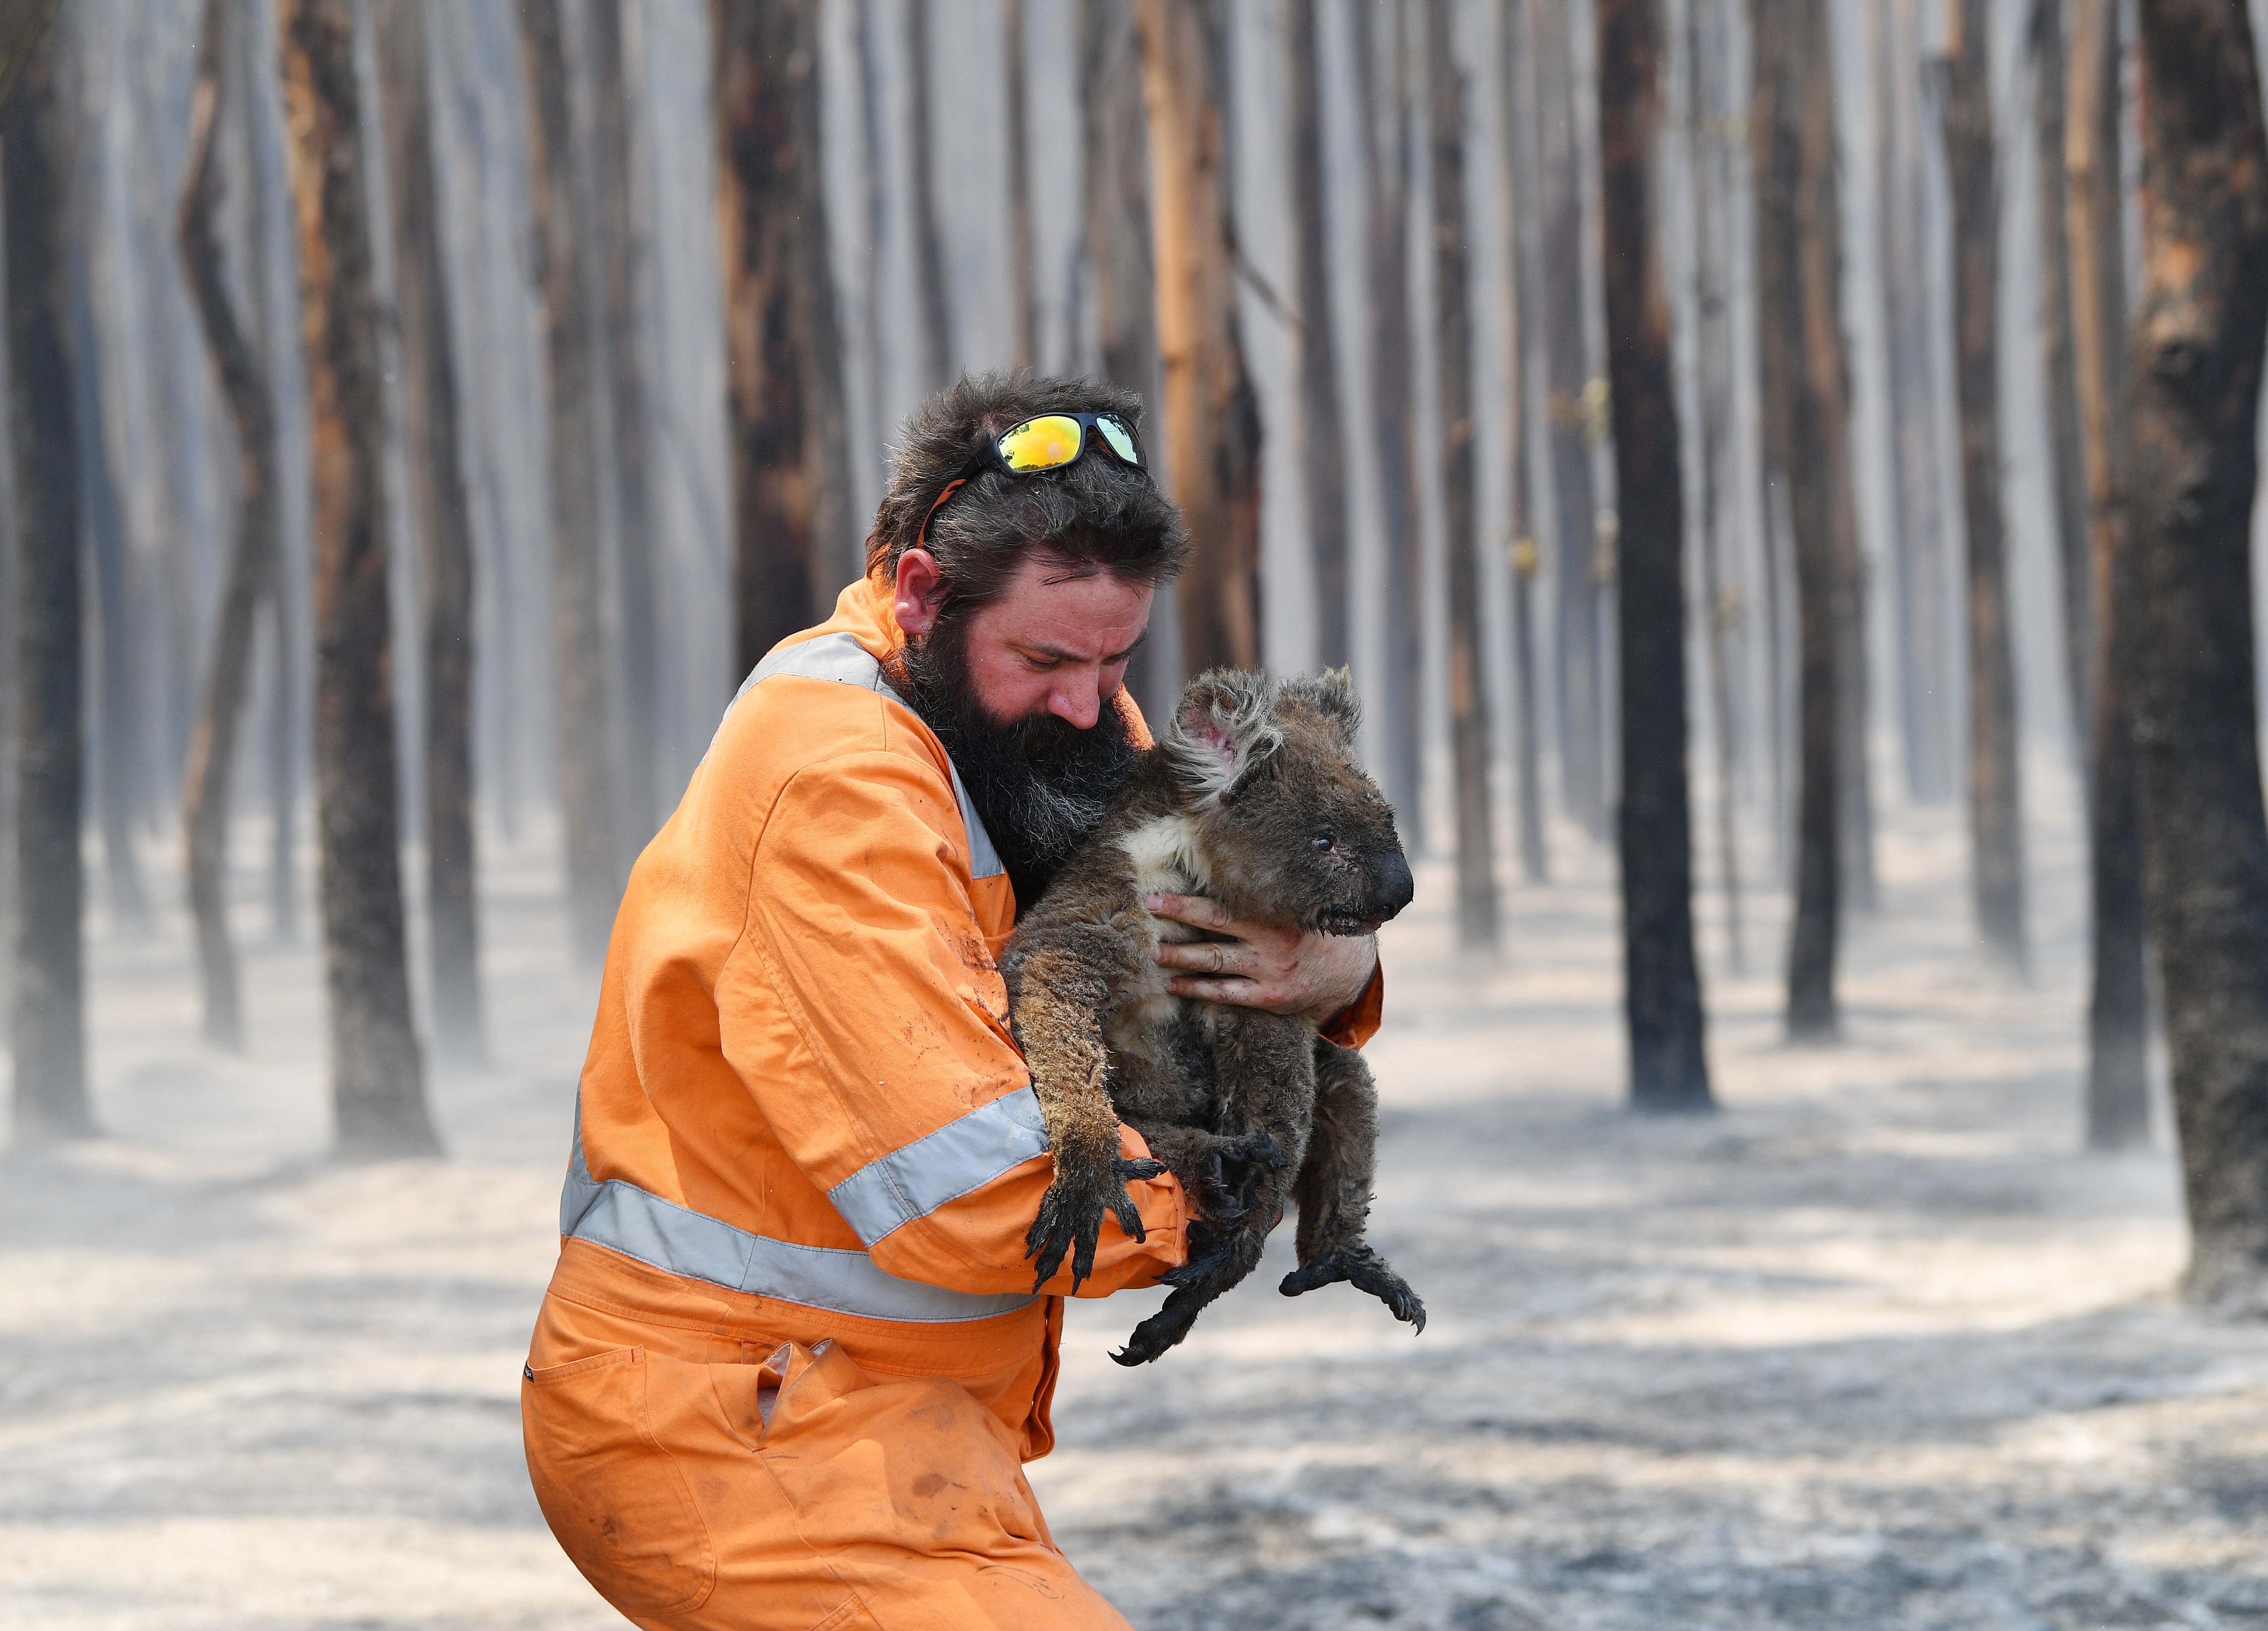 Adelaide wildlife rescuer Simon Adamczyk is seen with koala rescued at a burning forest near Cape Borda on Kangaroo Island, southwest of Adelaide, on 7 January.